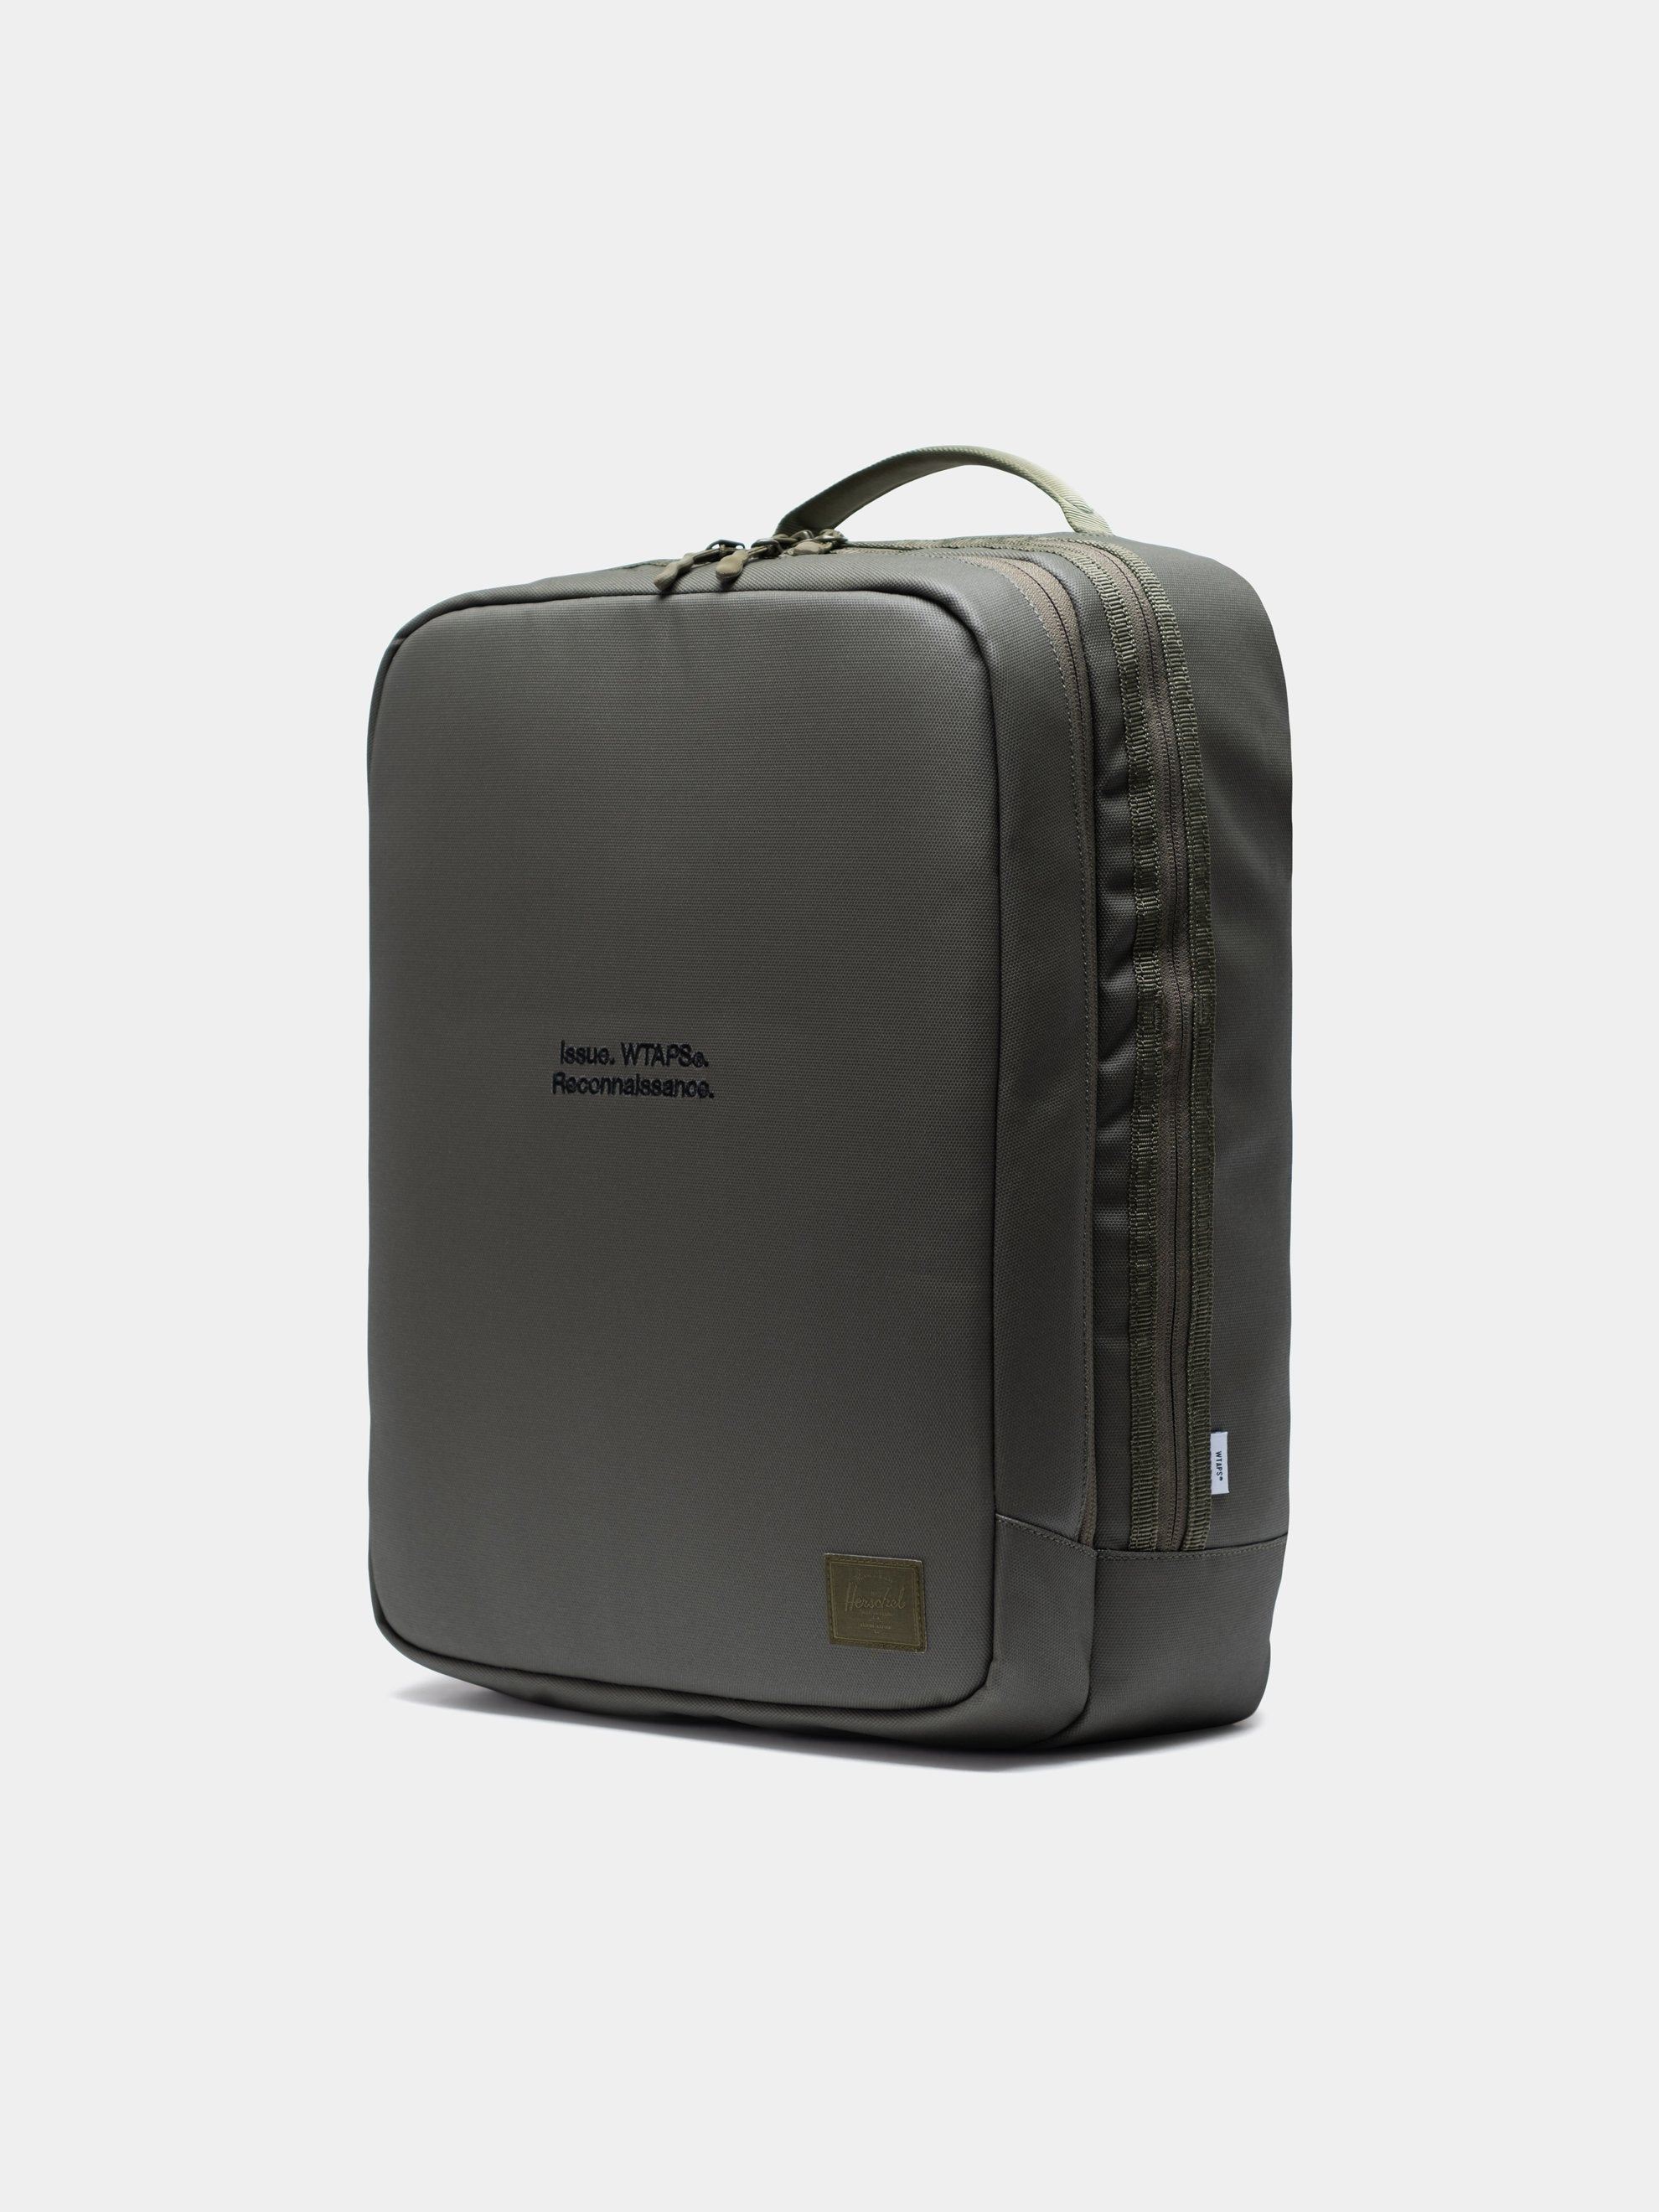 Burnt Olive Wtaps x Herschel Vessel Bag 4